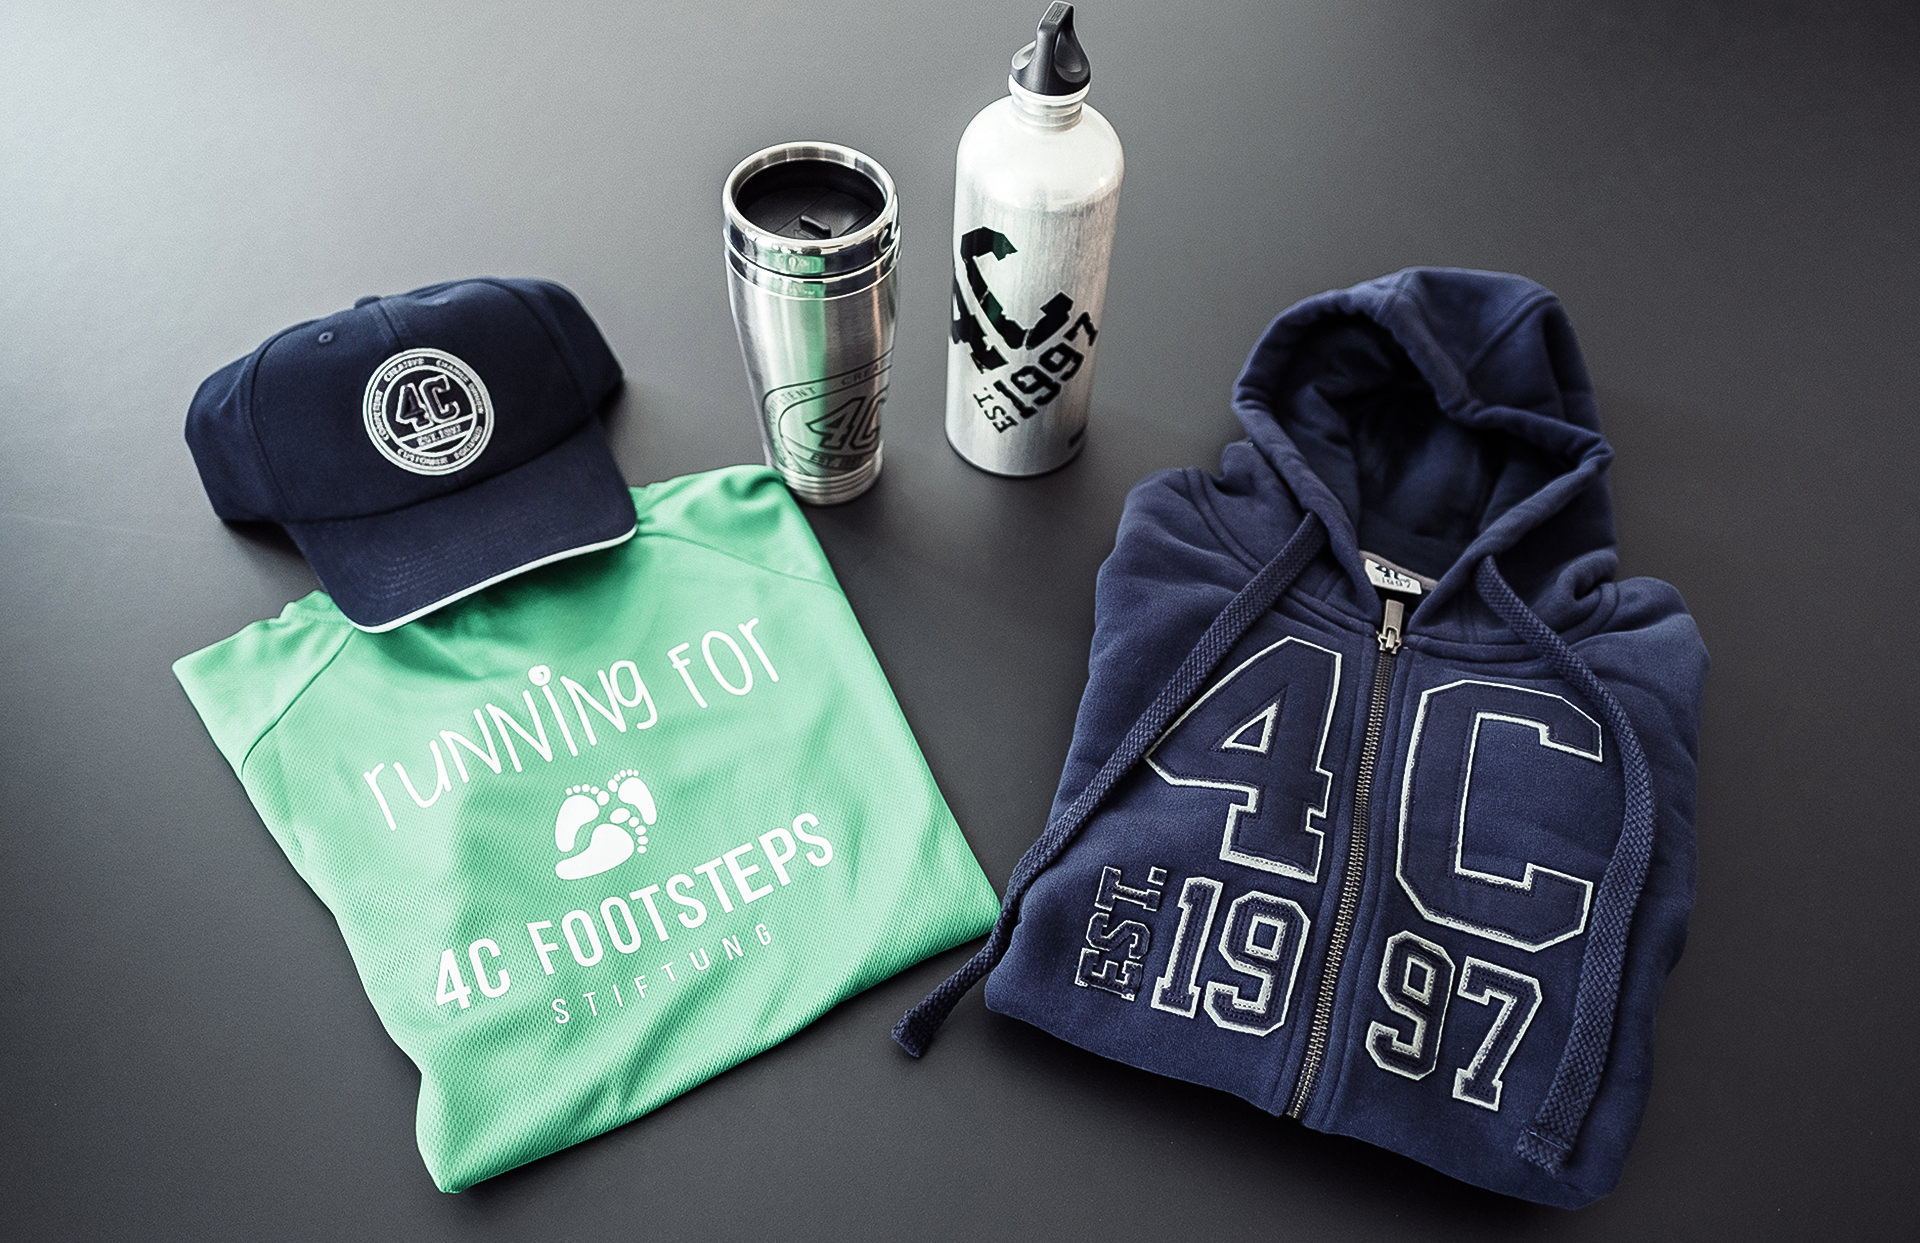 Overview of 4C collection design products including branded hoodies, individual shirts, caps and coffe mugs designed by LAKE5 in Hannover.